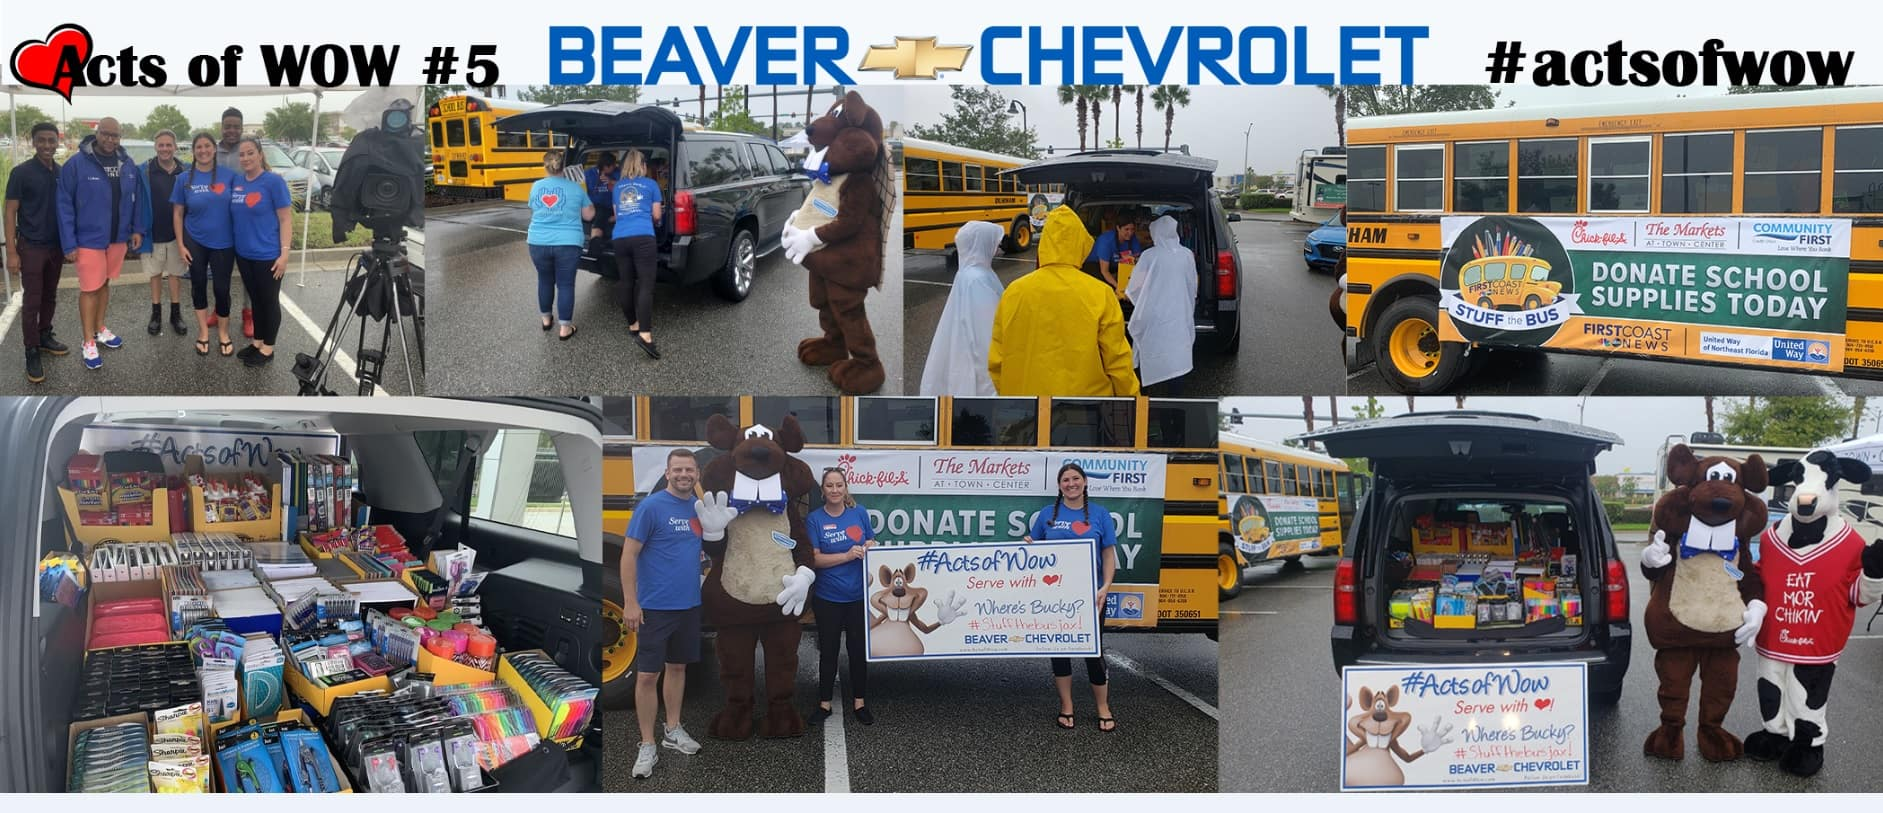 Acts of Wow #5 Beaver Chevrolet Jacksonville Florida